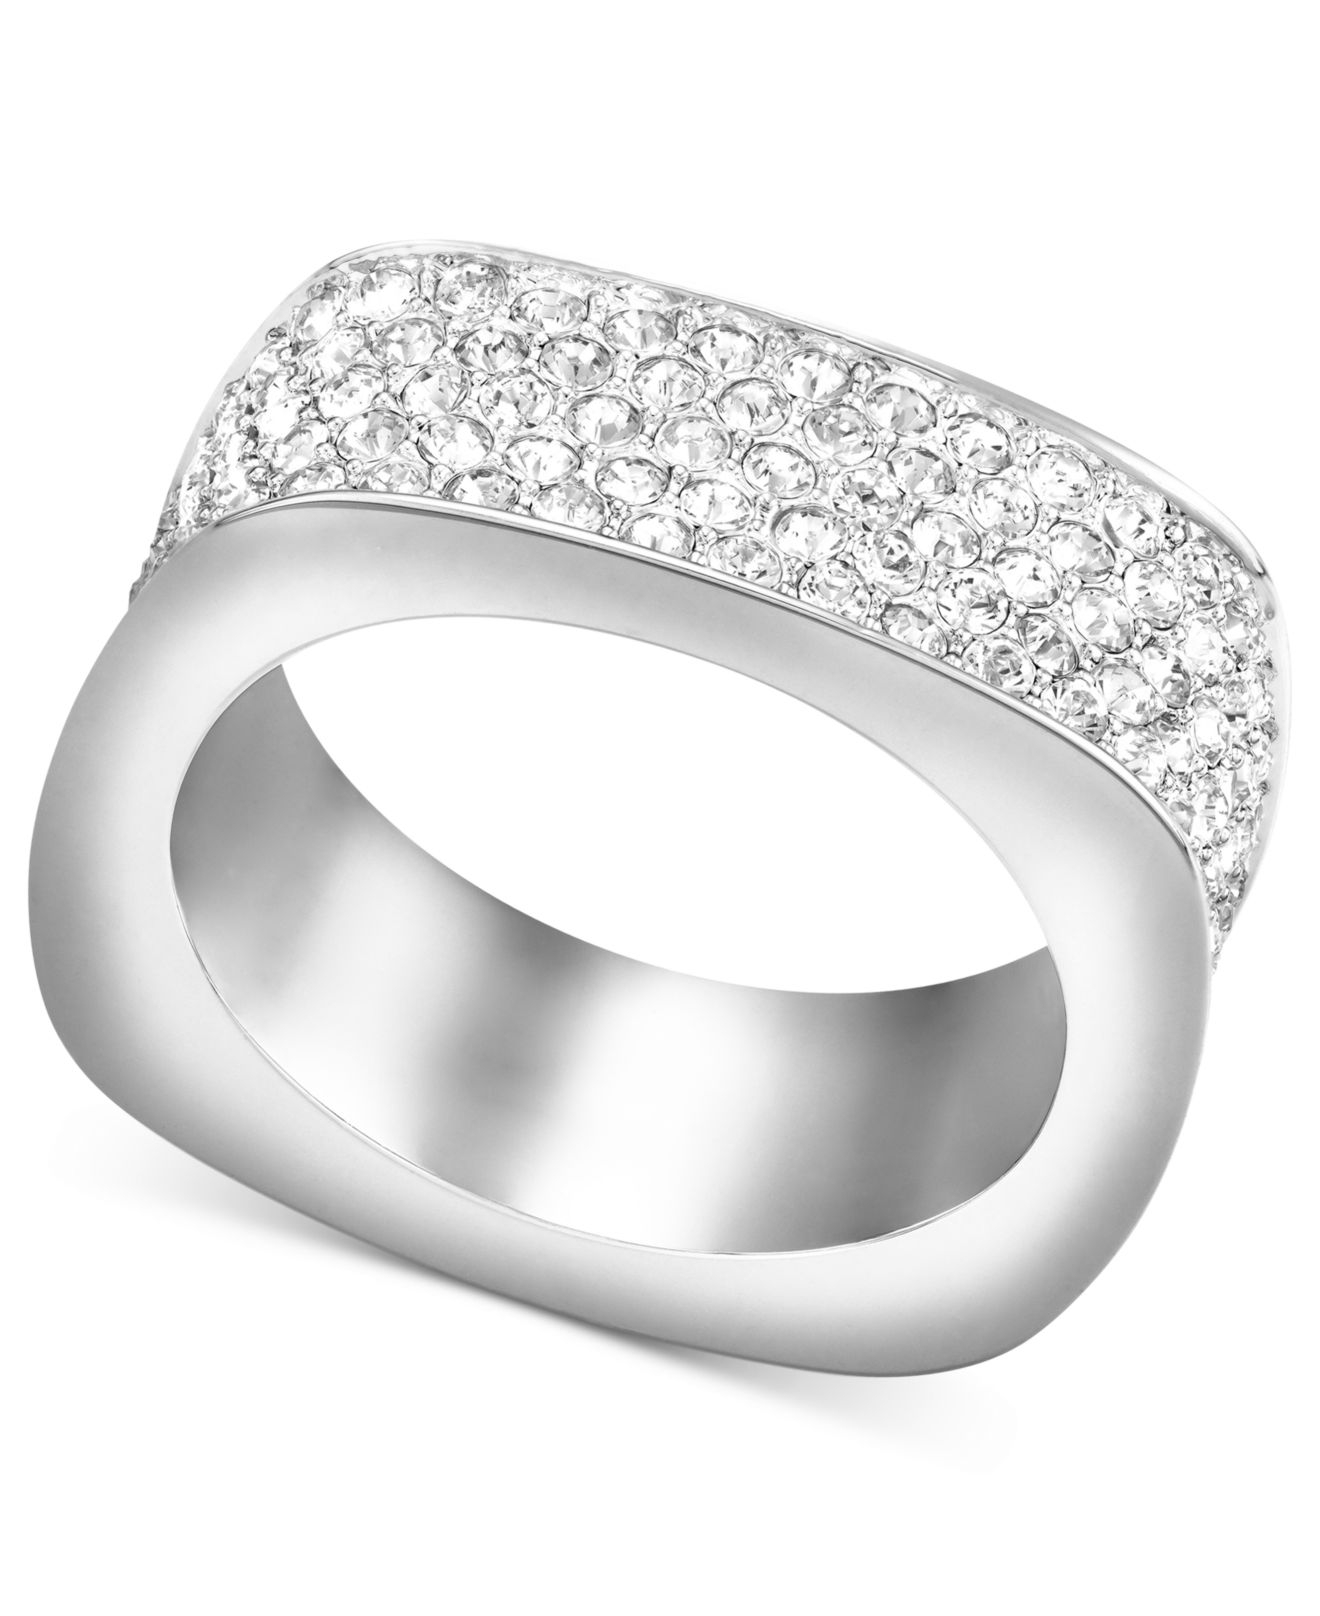 183d89fe9cee Lyst - Swarovski Rhodium-plated Pave Crystal Square Ring in White